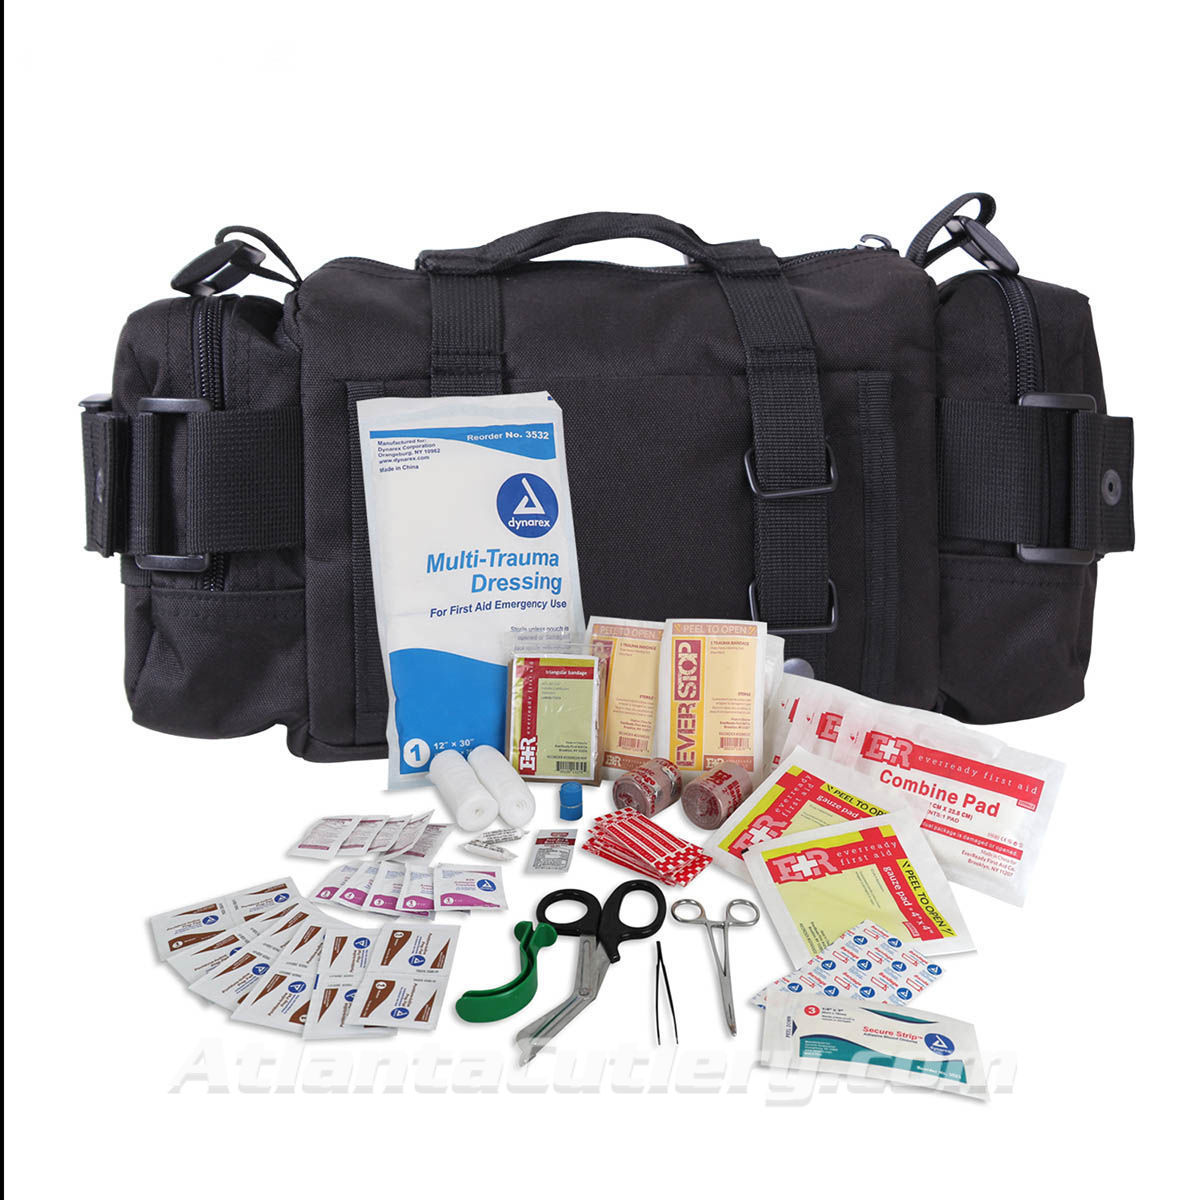 Fast Access MOLLE Tactical Trauma Kit contains over 80 essential first aid supply items packed into a convenient Convertipack.